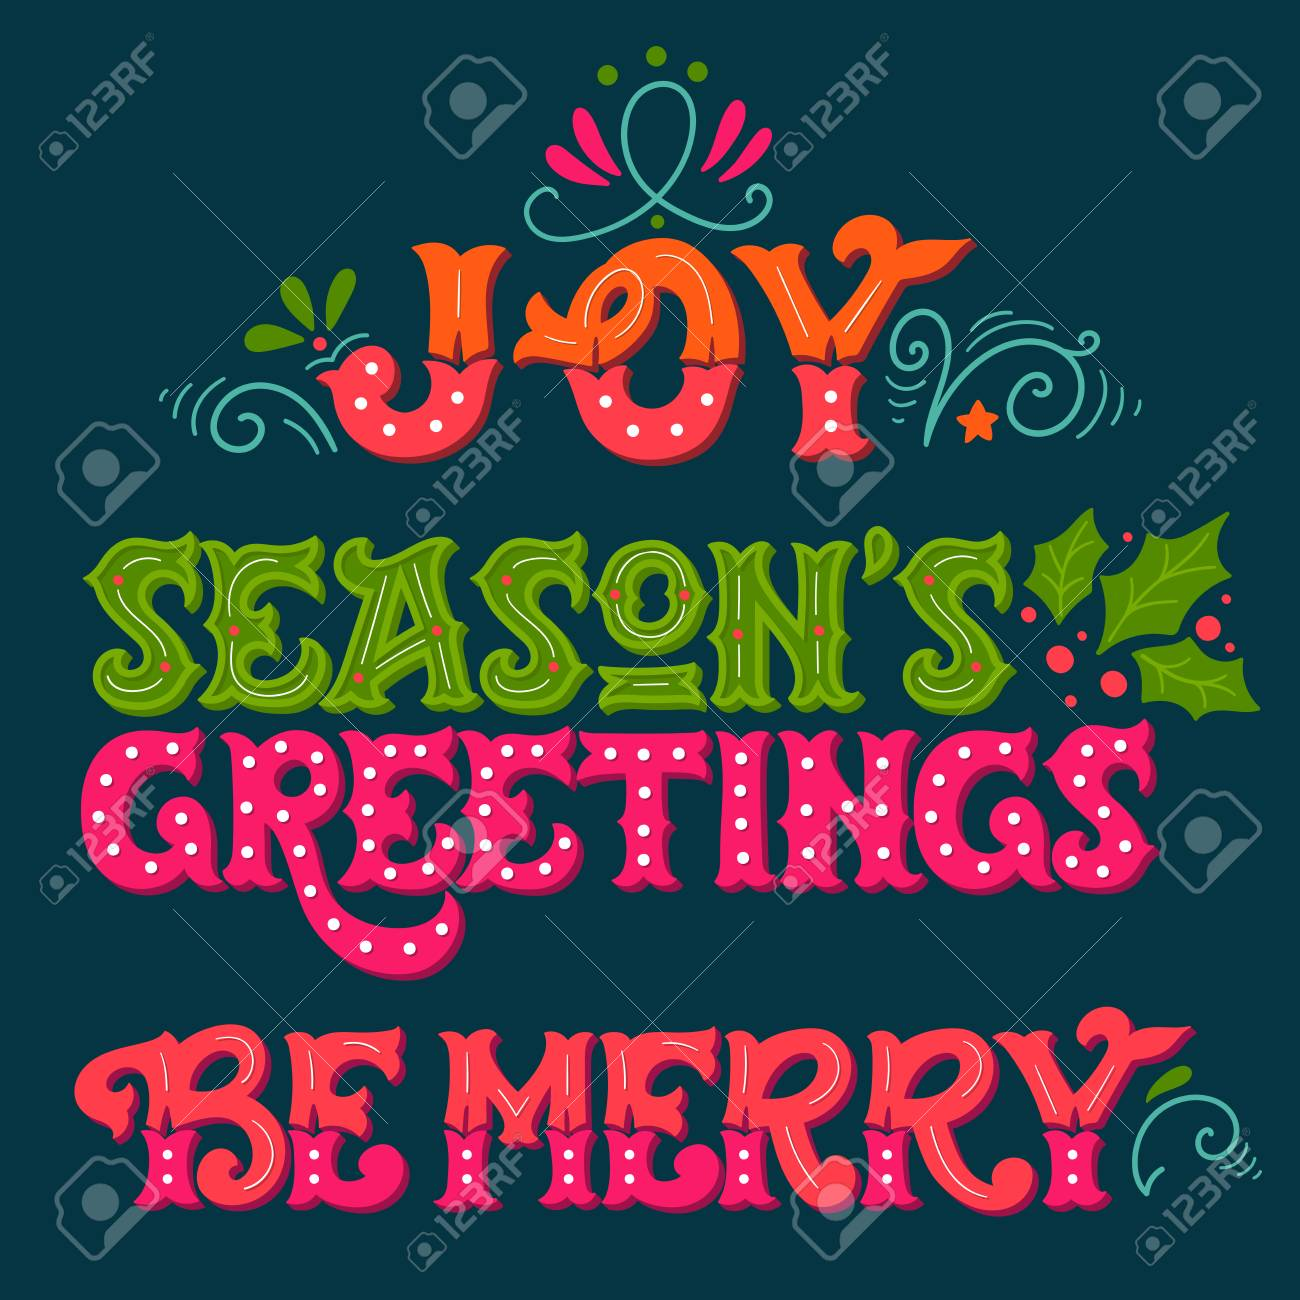 Joy seasons greetings be merry collection of hand drawn winter seasons greetings be merry collection of hand drawn winter holiday sayings m4hsunfo